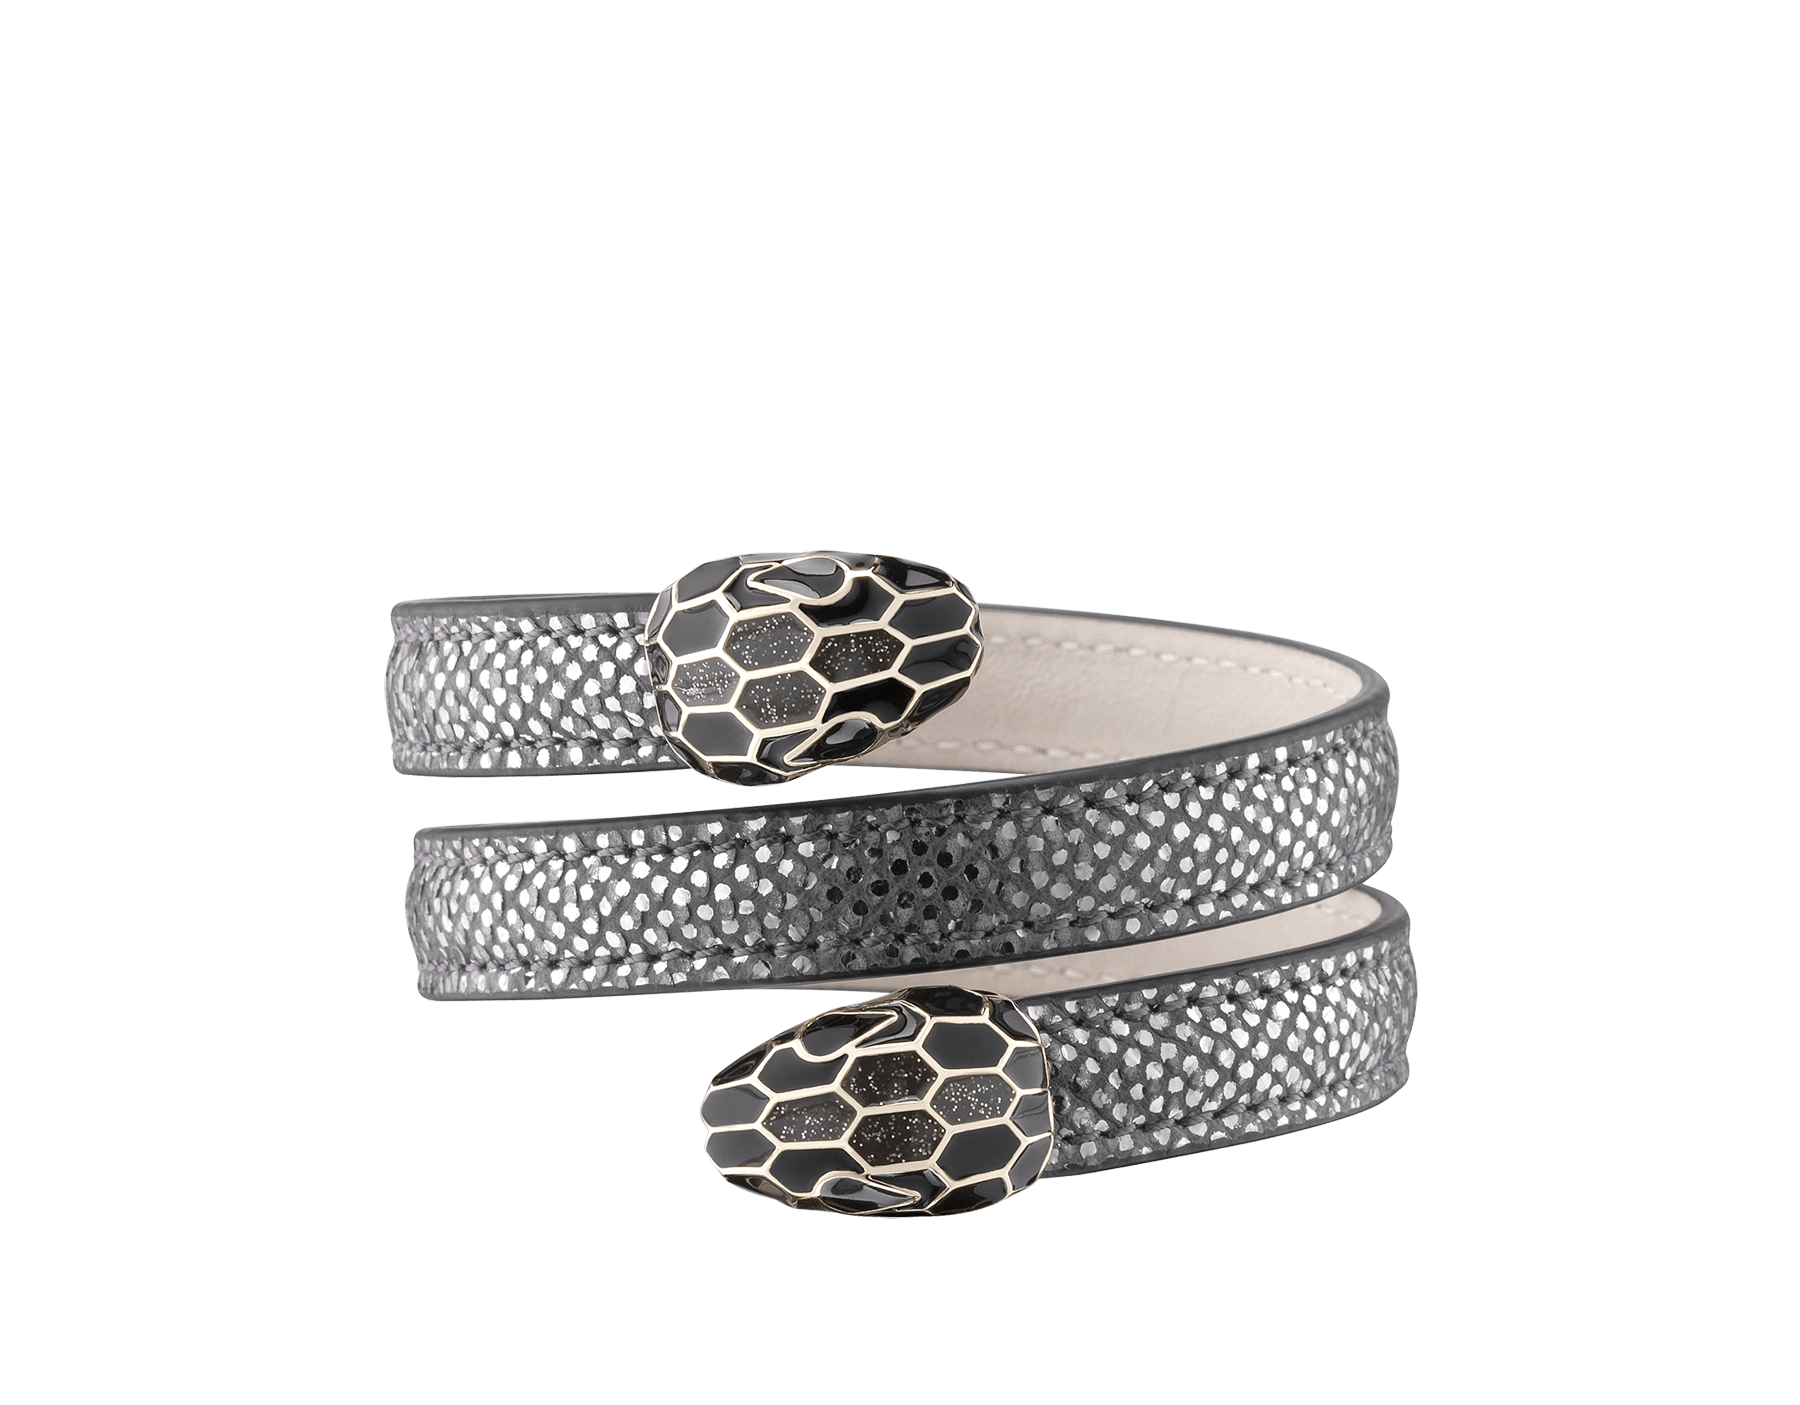 Serpenti Forever multi-coiled rigid Cleopatra bracelet in charcoal diamond metallic karung skin, with brass light gold plated hardware. Iconic double snakehead décor in black and glitter charcoal diamond enamel, with black enamel eyes. Cleopatra-MK-CD image 1